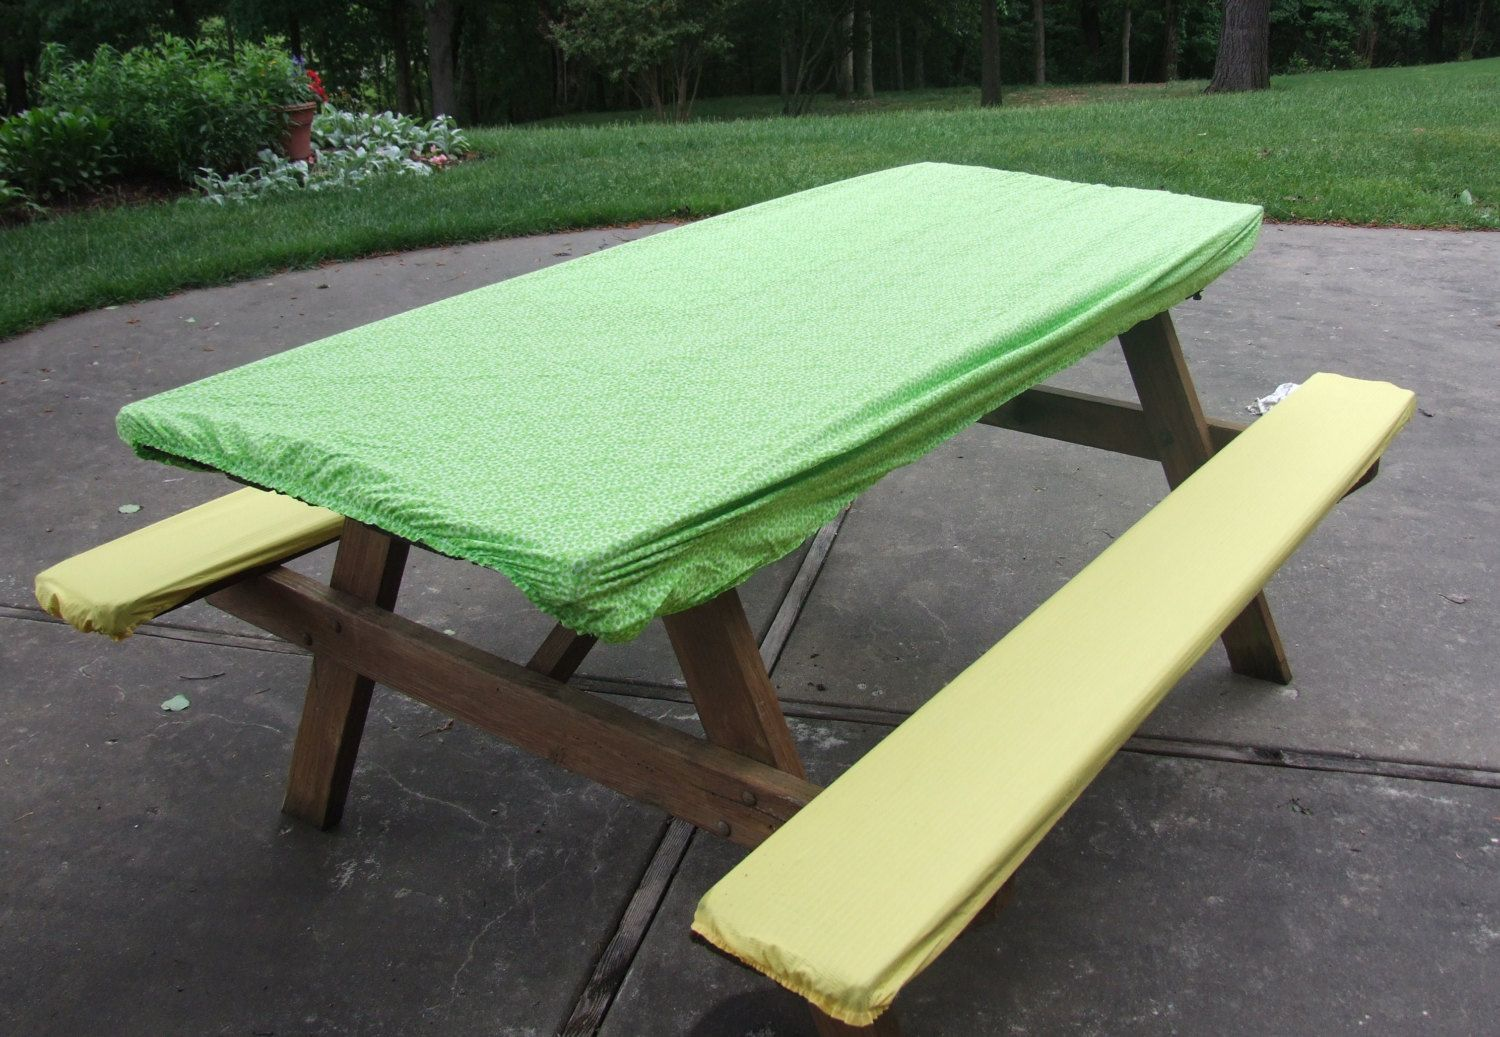 Picnic Table And Seat Cover Set With Elastic Ends Green And White